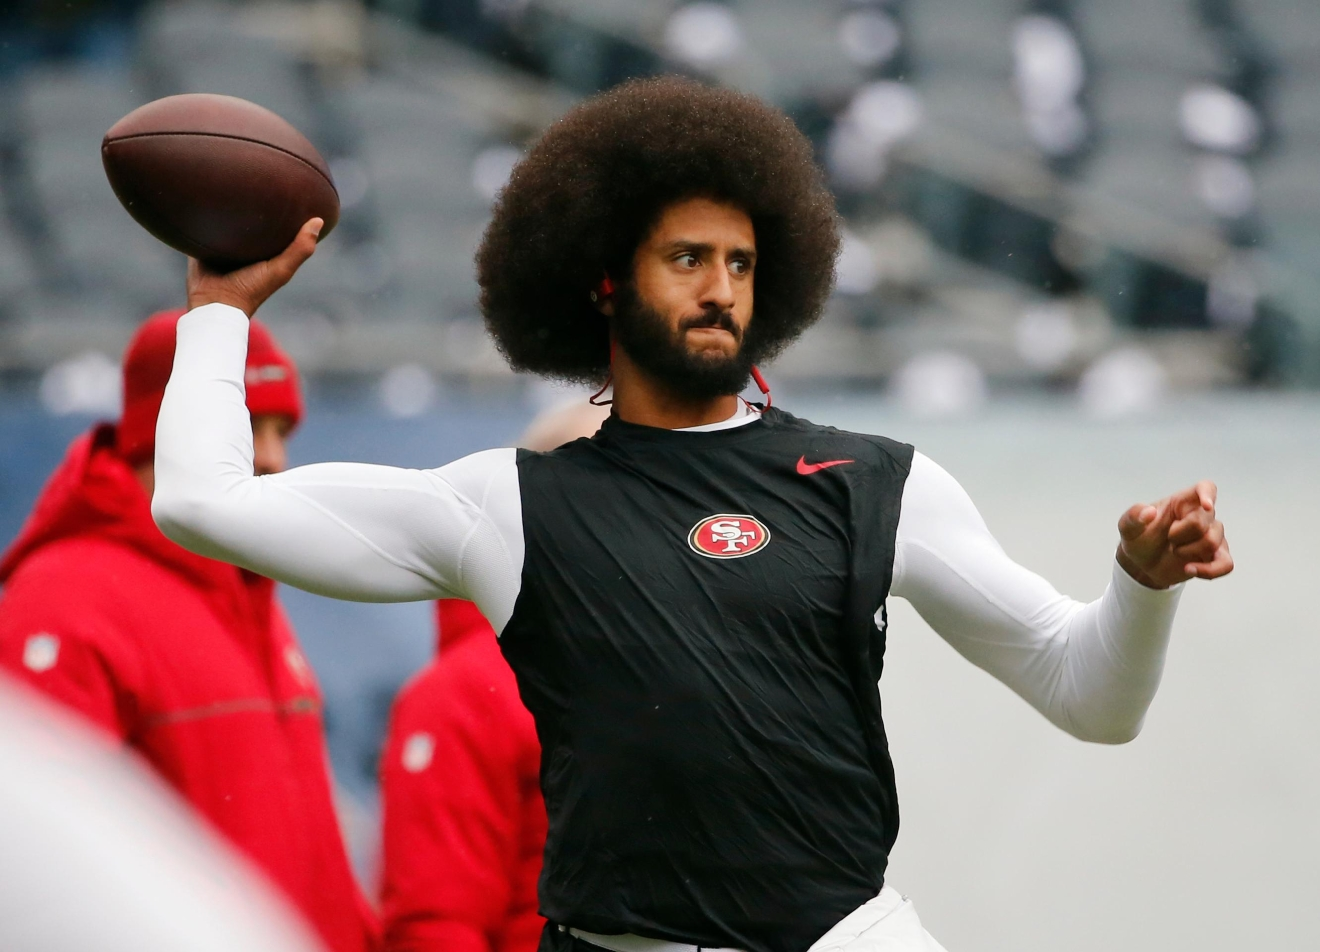 FILE - In this Dec. 4, 2016, file photo, San Francisco 49ers quarterback Colin Kaepernick warms up before an NFL football game against the Chicago Bears.{&amp;nbsp;} (AP Photo/Charles Rex Arbogast, File)<p></p>